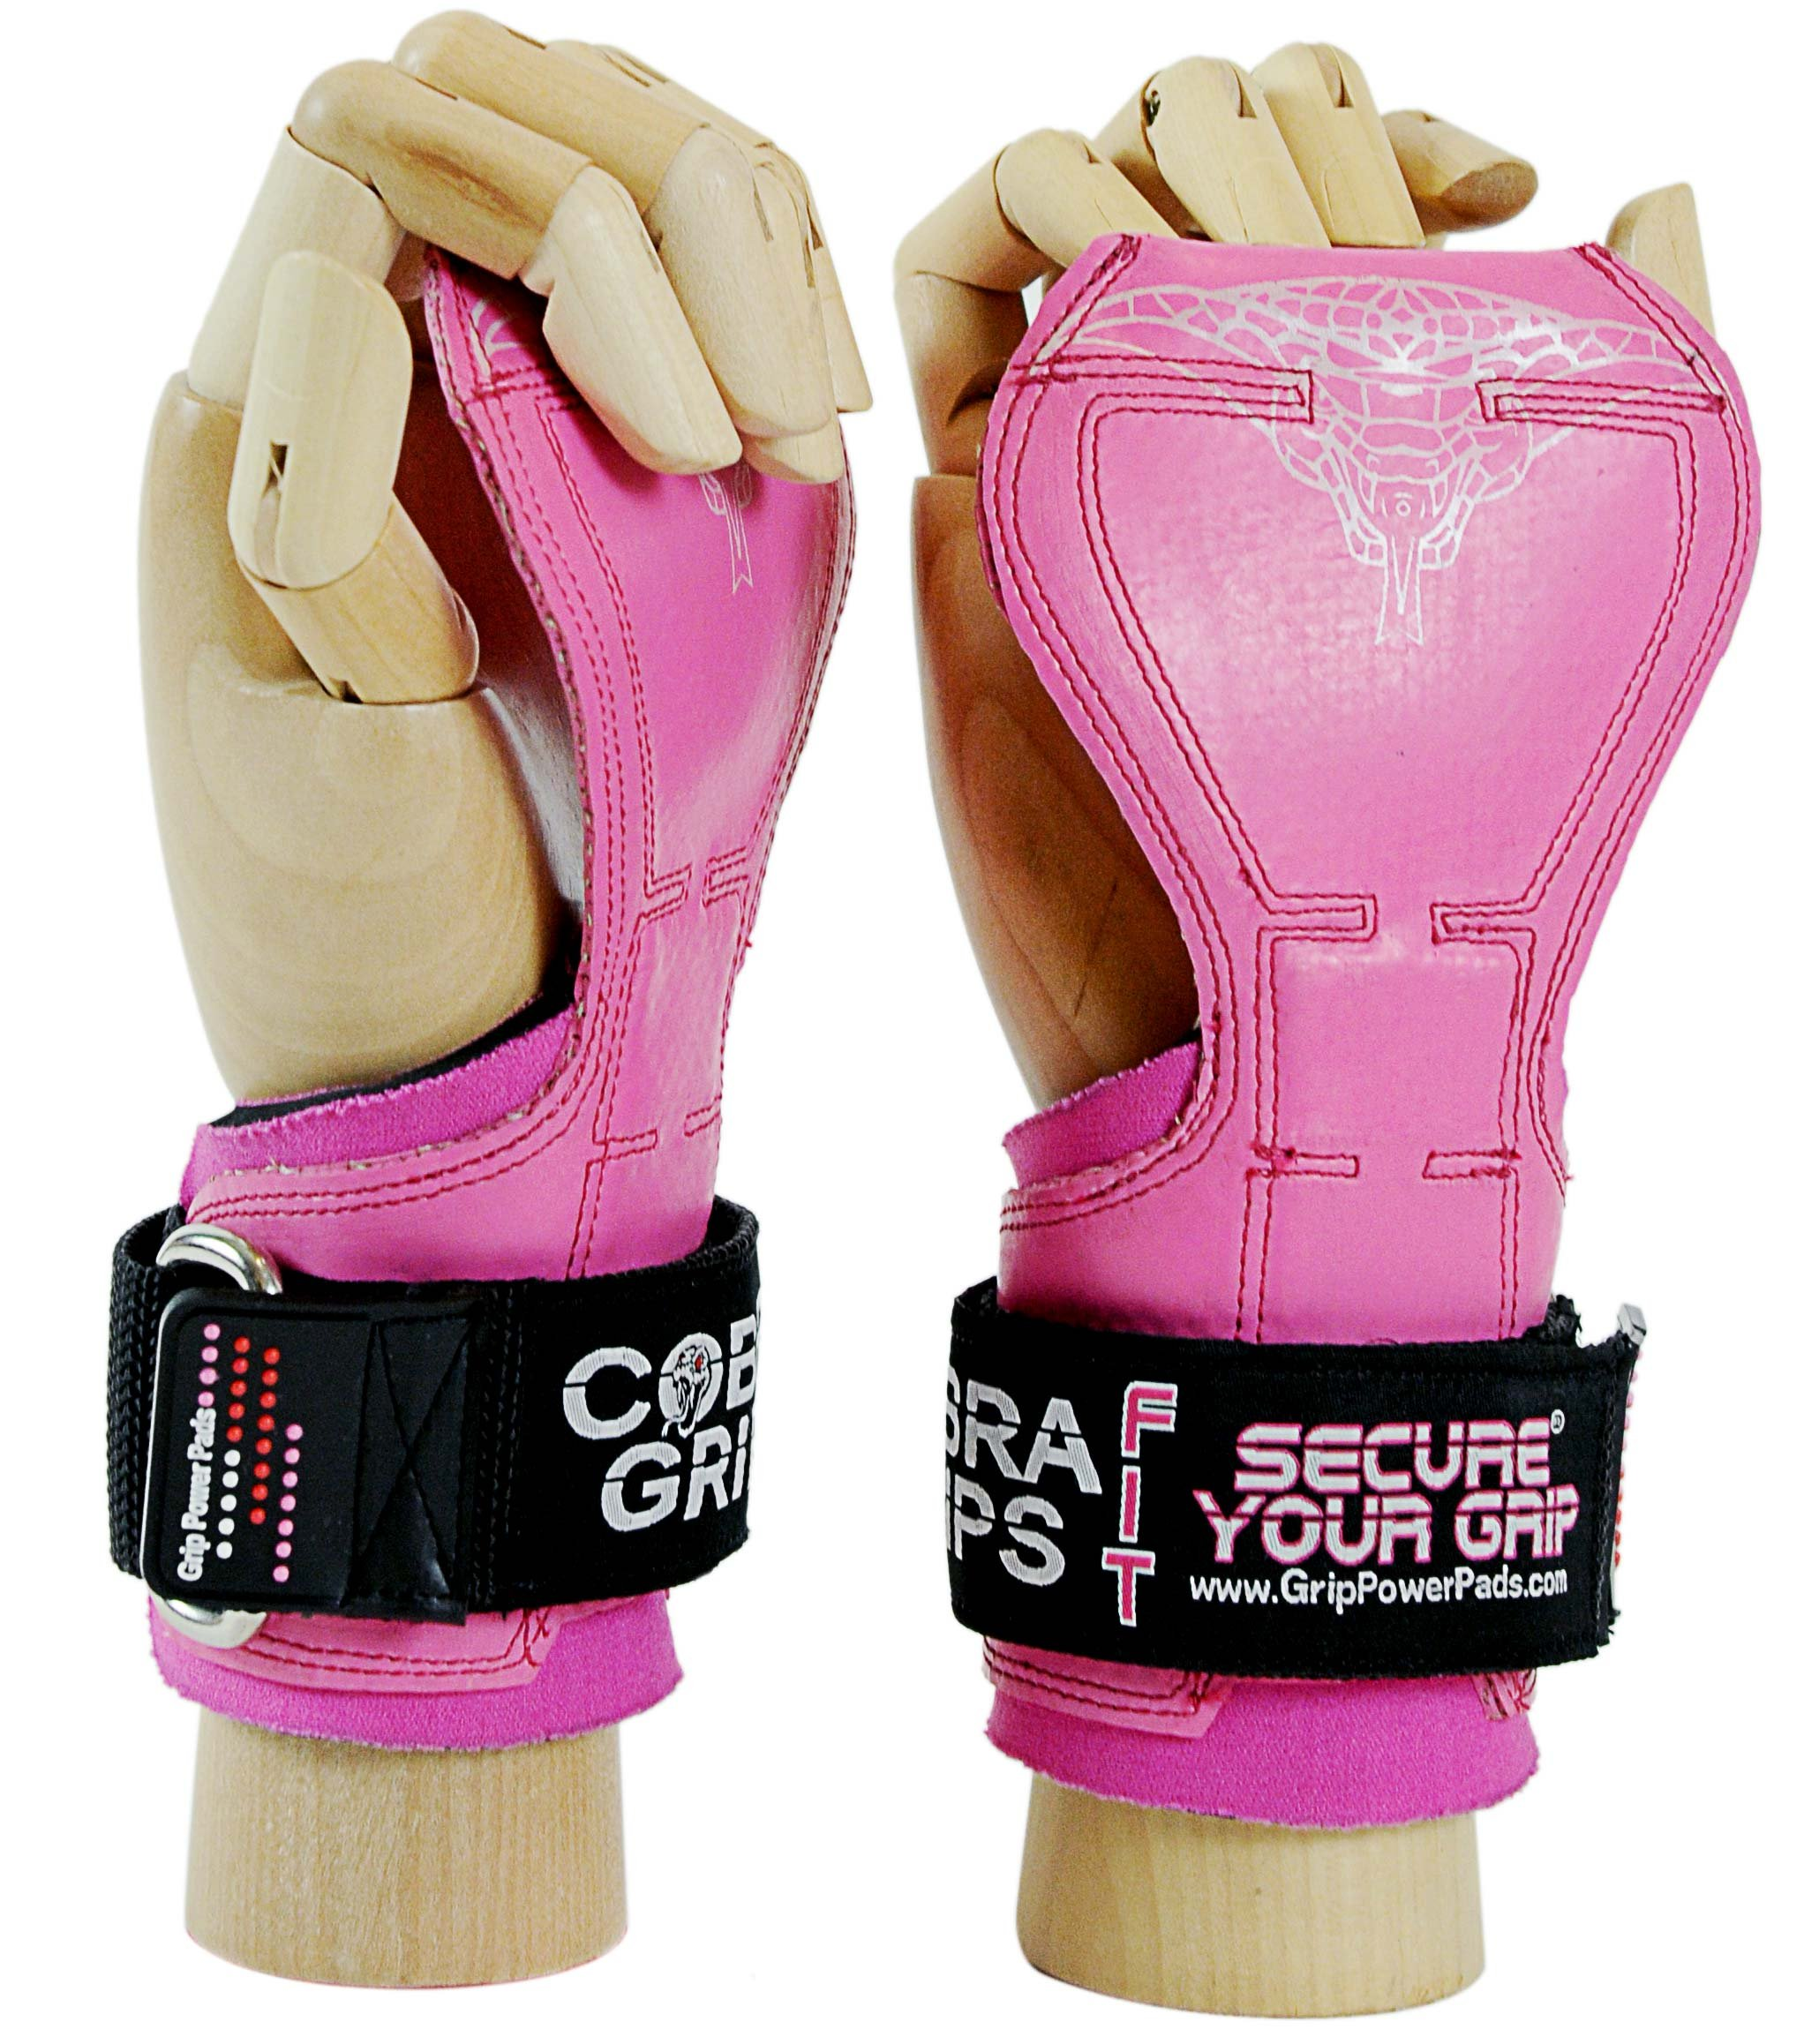 Cobra Grips FIT Weight Lifting Gloves, Heavy Duty Straps, Alternative to Power Lifting Hooks, Power Lifting, For Deadlifts With Built in Adjustable Neoprene Padded Wrist Wrap Support.